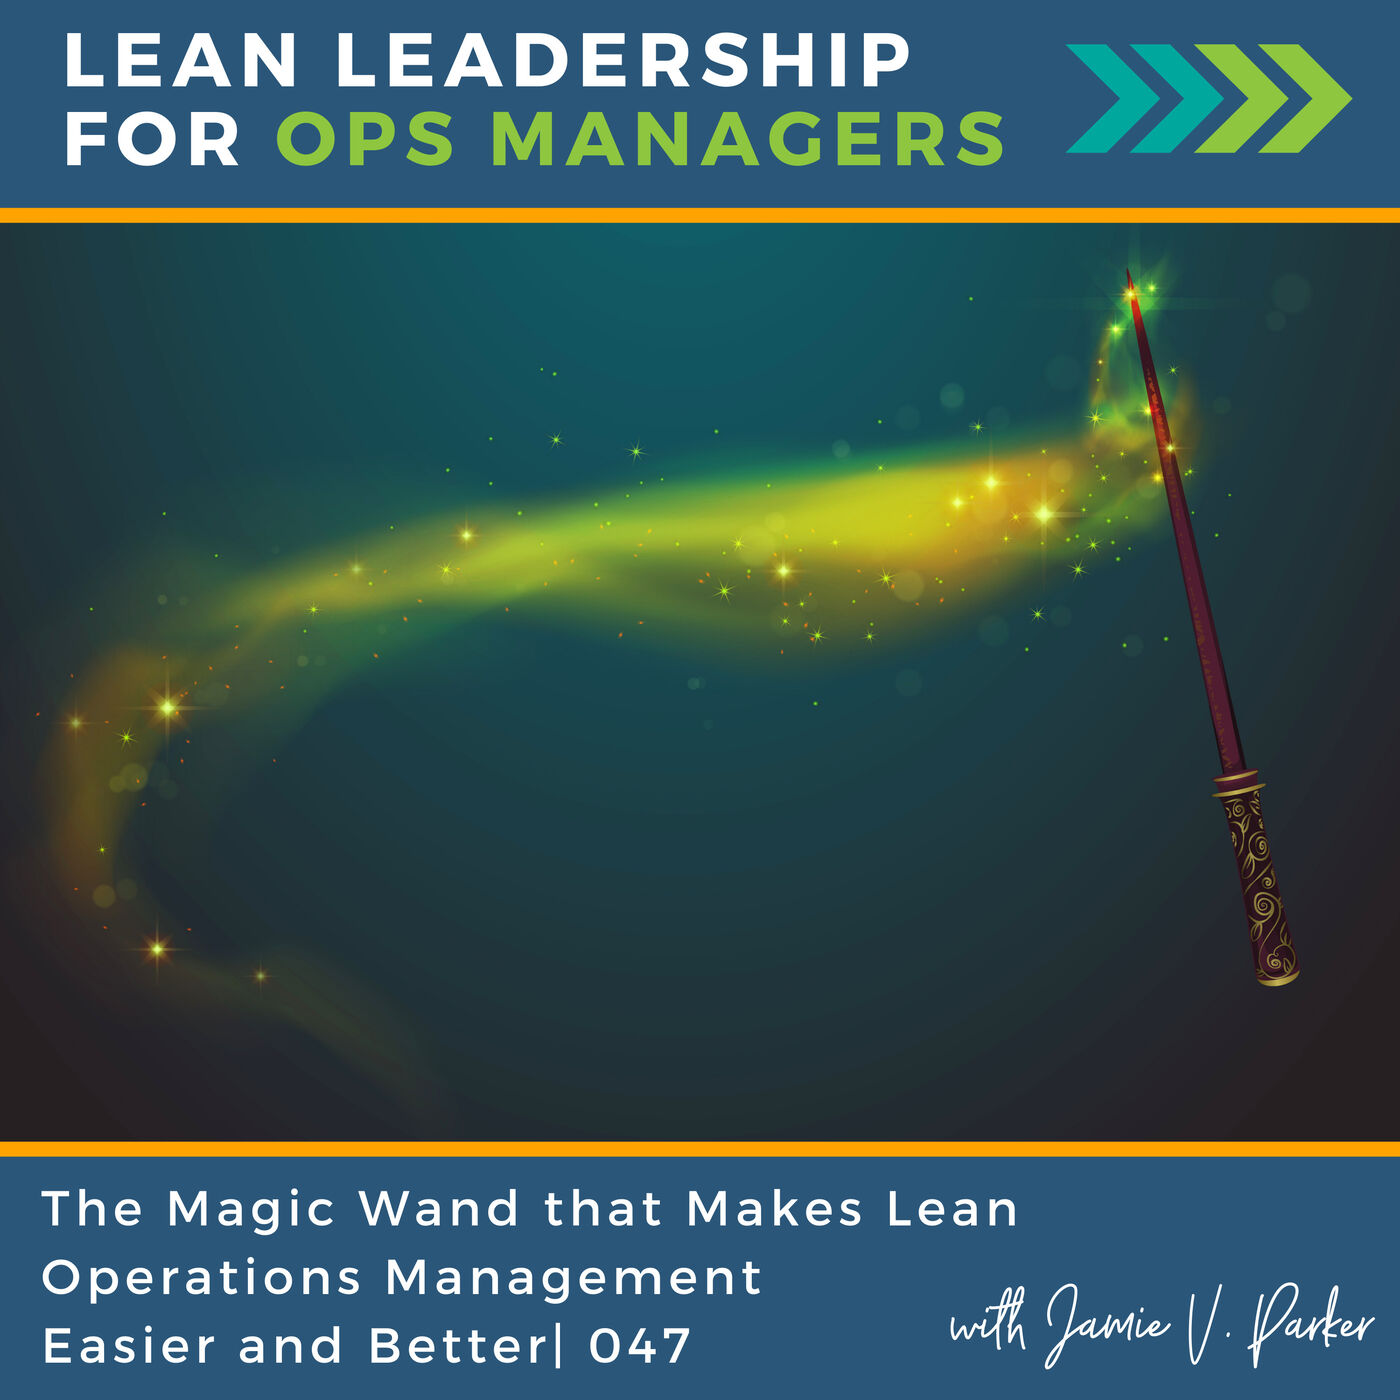 The Magic Wand that Makes Lean Operations Management Easier and Better   047